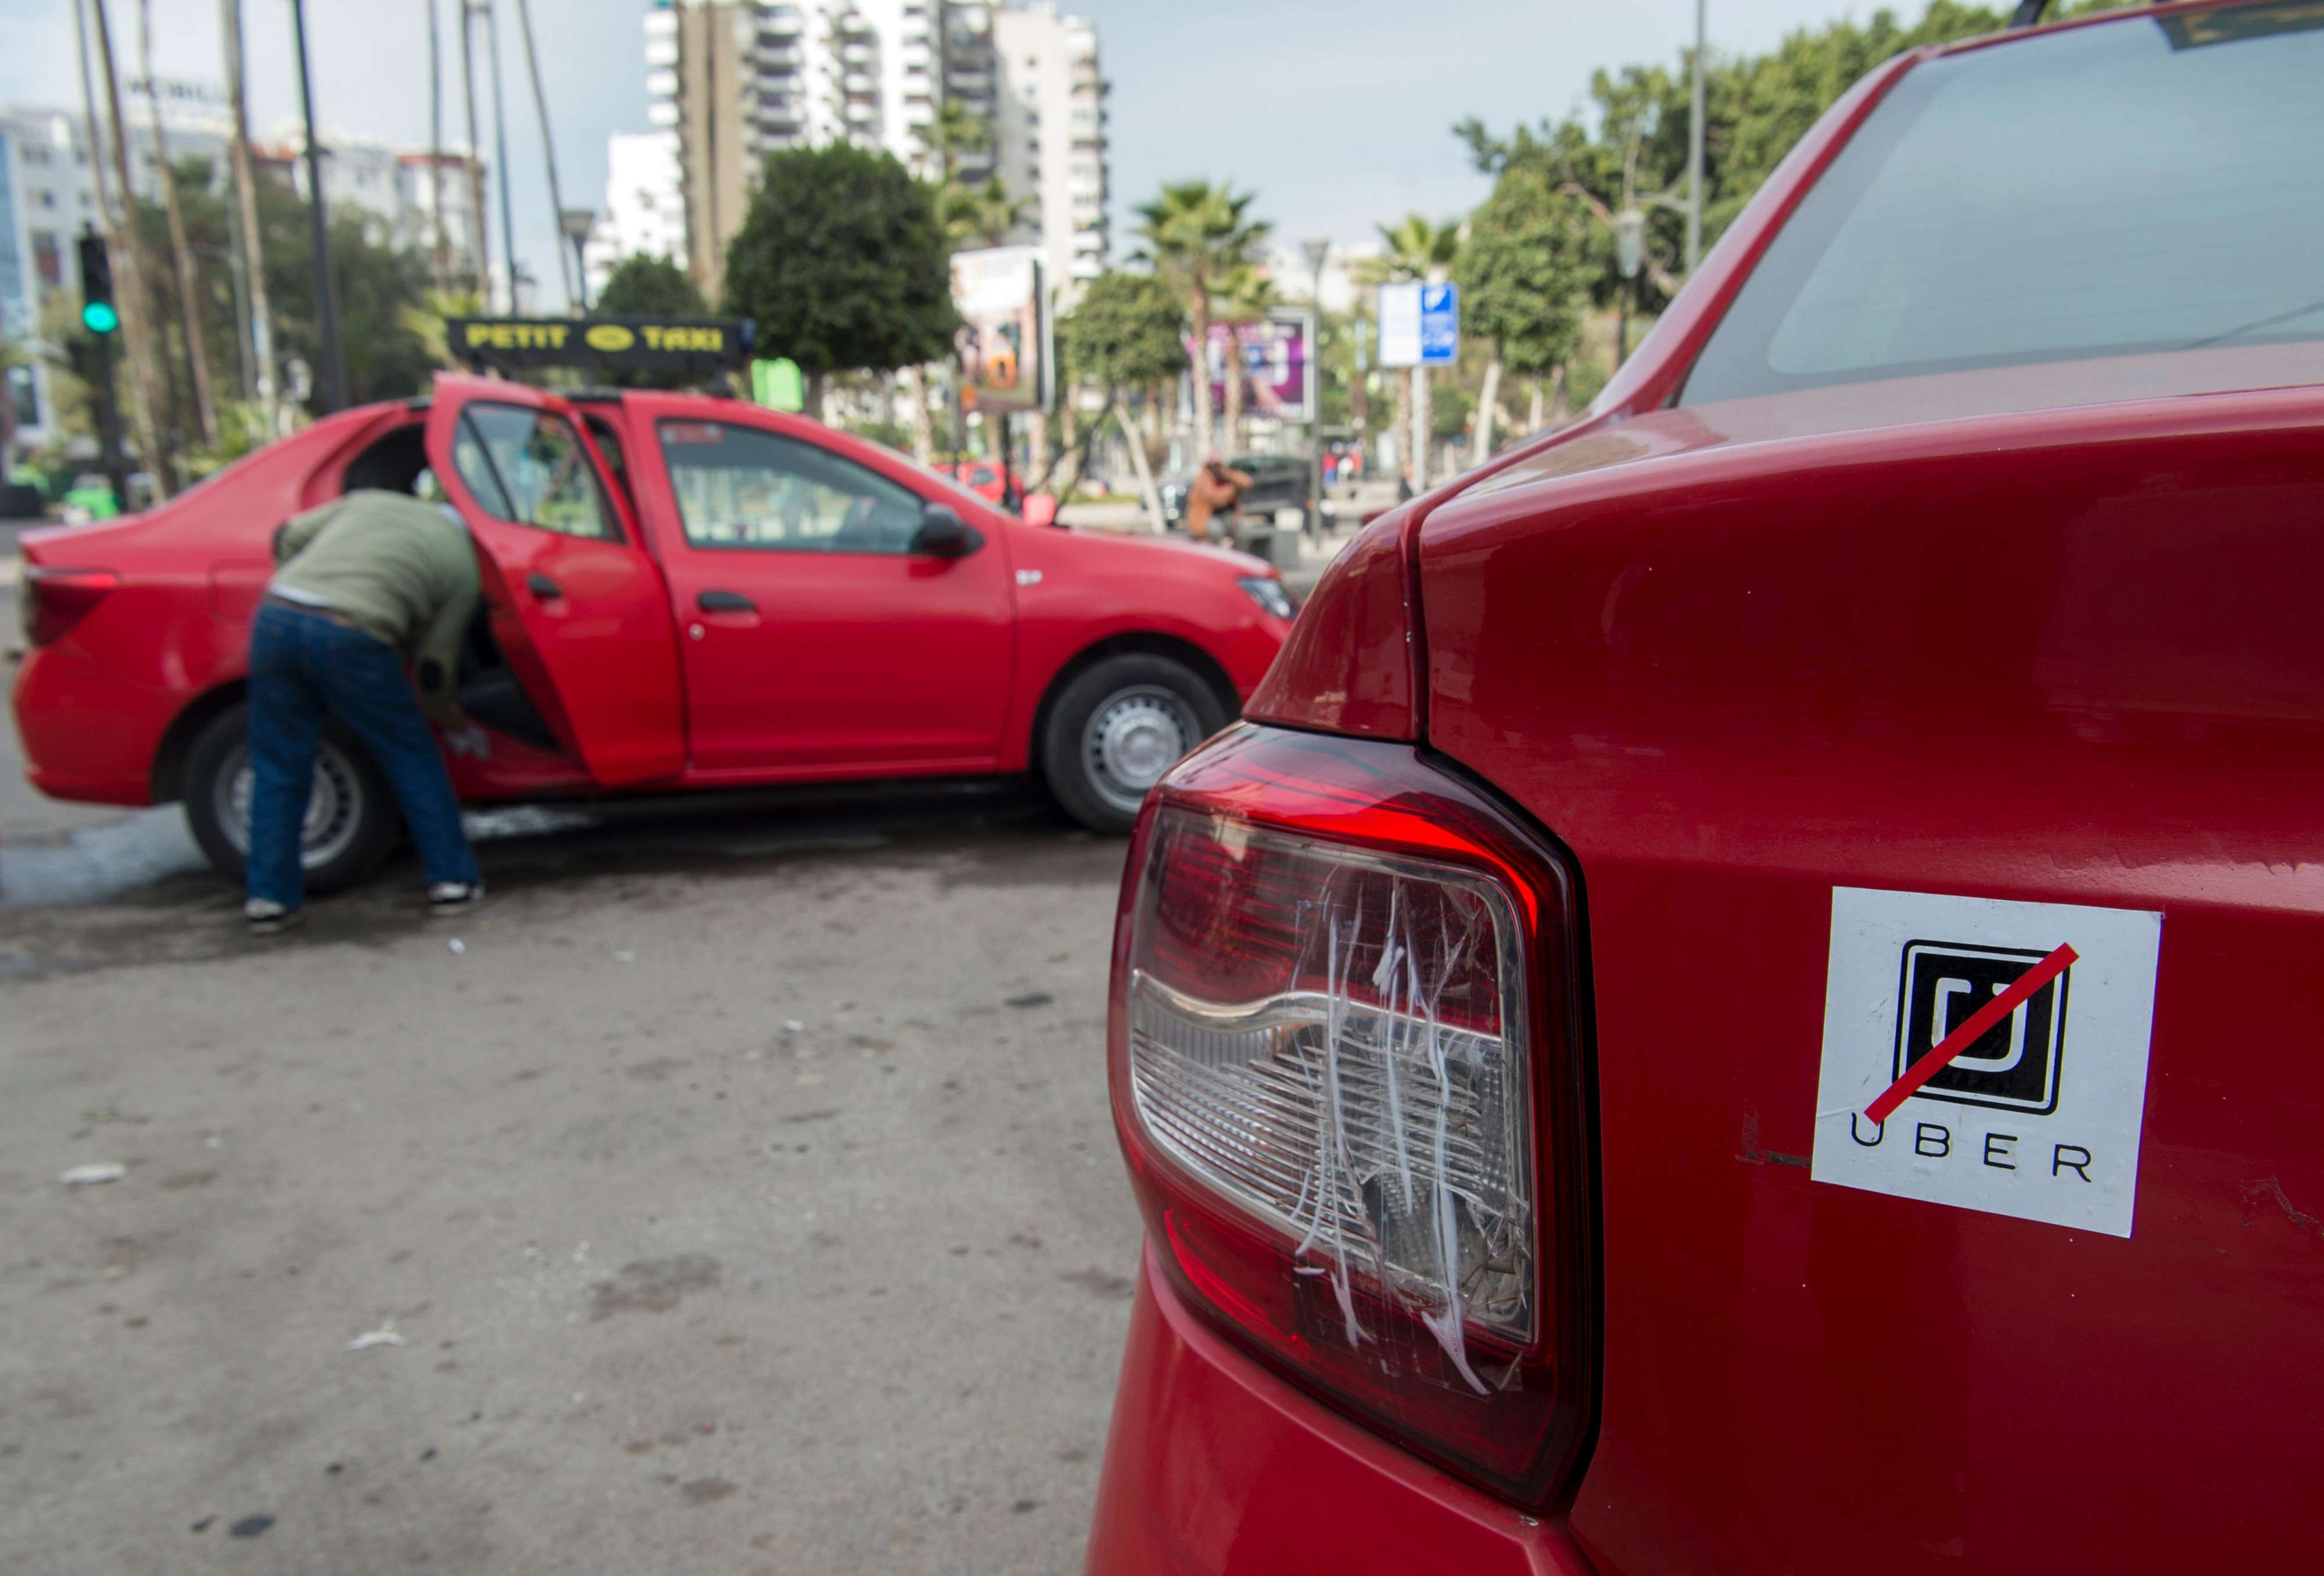 An anti-Uber sticker is seen on the back of a taxi in Casablanca. (AFP)